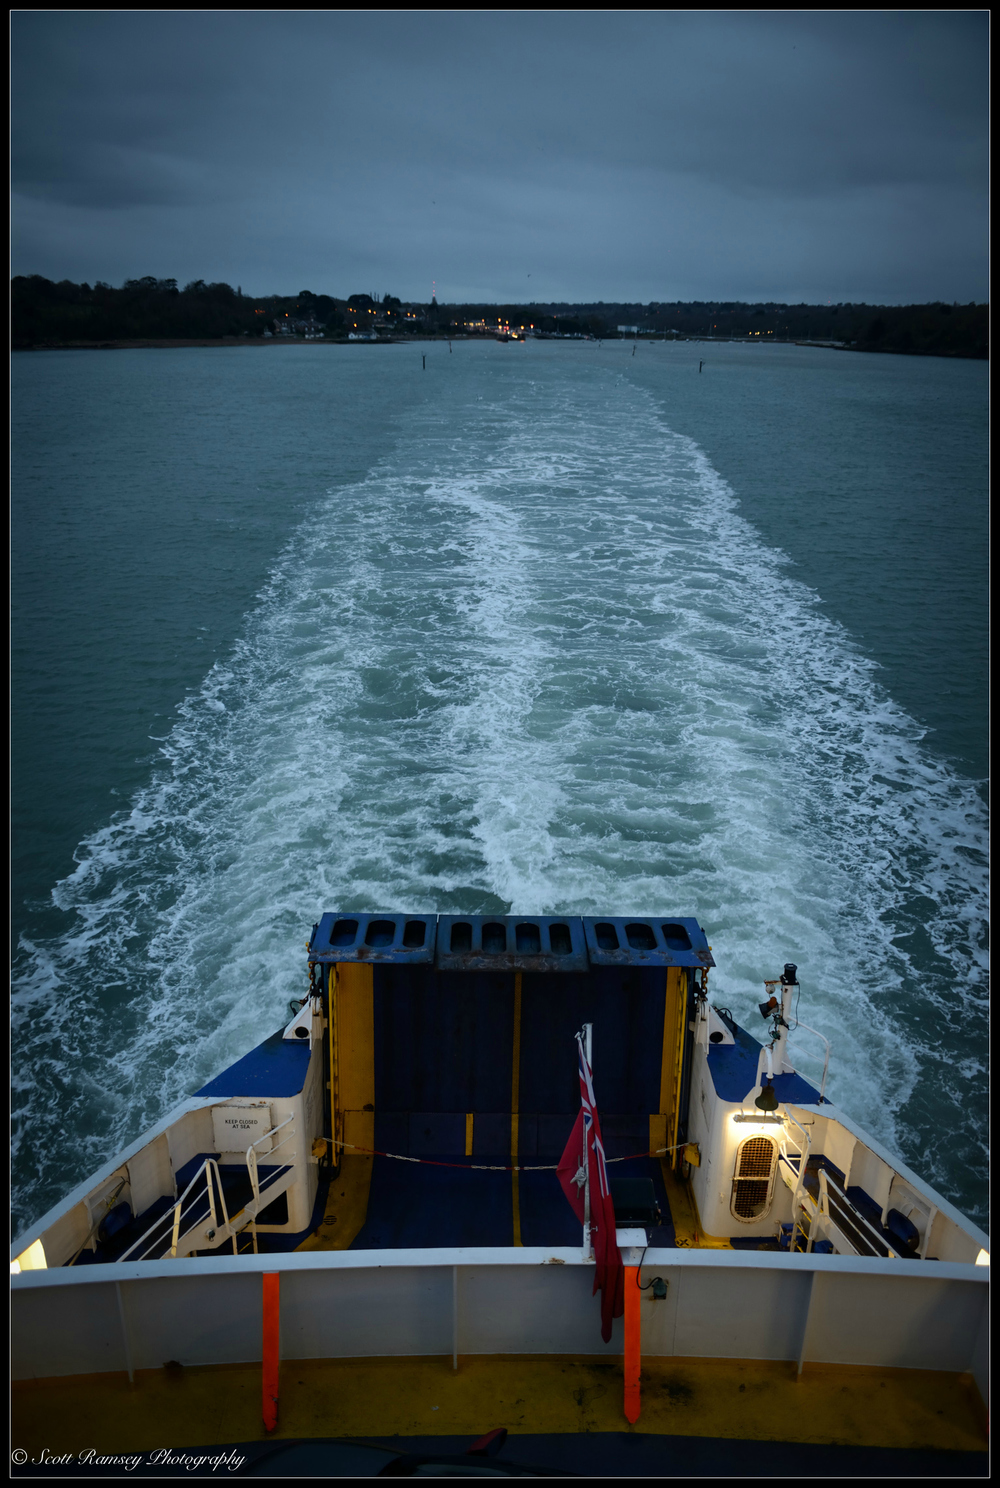 The ferry's propeller stirs up the dark water as the night ferry leaves Fishbourne on the Isle of Wight.